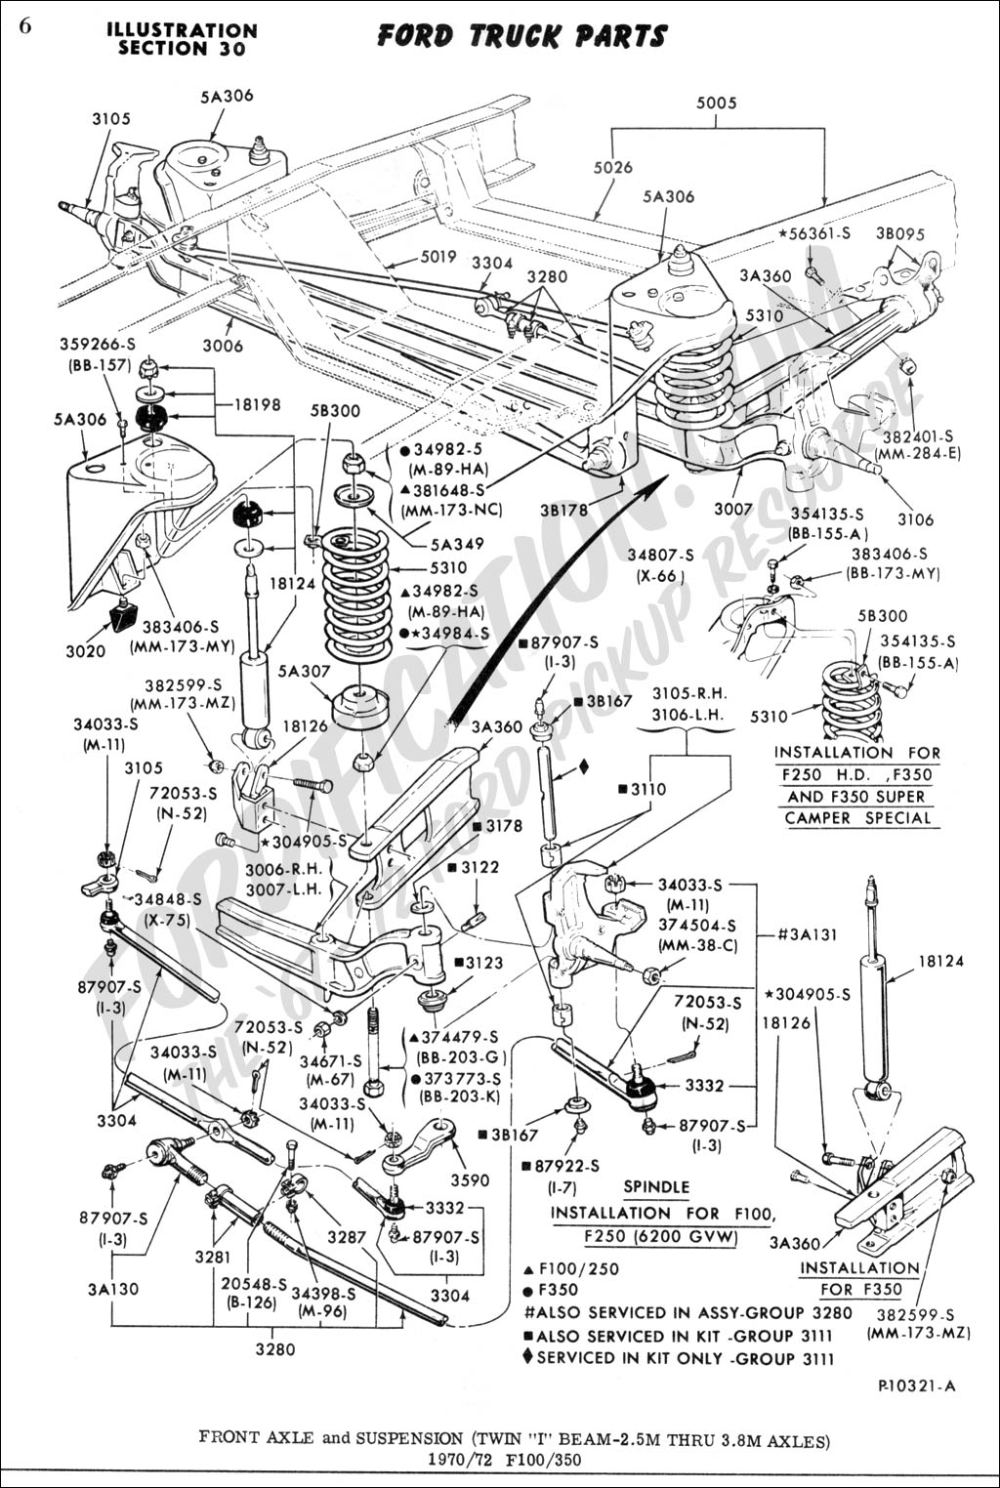 medium resolution of ford focus rear suspension diagram 02 ford f 250 4x4 front end ford f 250 front suspension diagram also ford f 350 super duty wiring